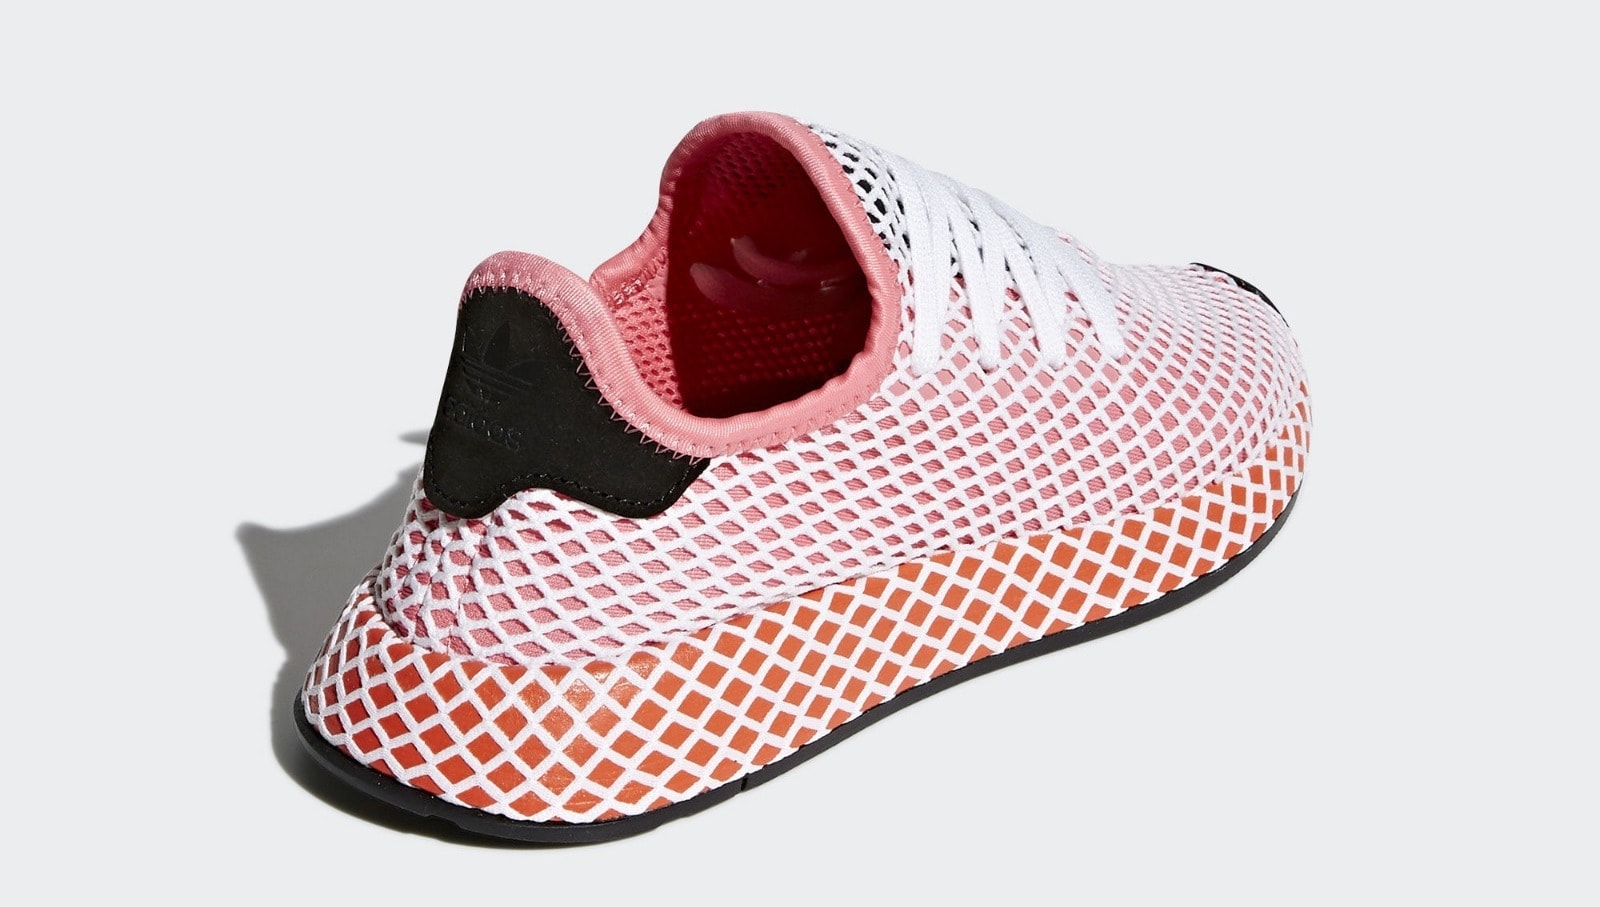 outlet store fec3a f60c9 adidas Deerupt Runner PinkOrange Release Date March 22nd, 2018. Price  100. Color Chalk PinkChalk PinkBold Orange Style Code CQ2910